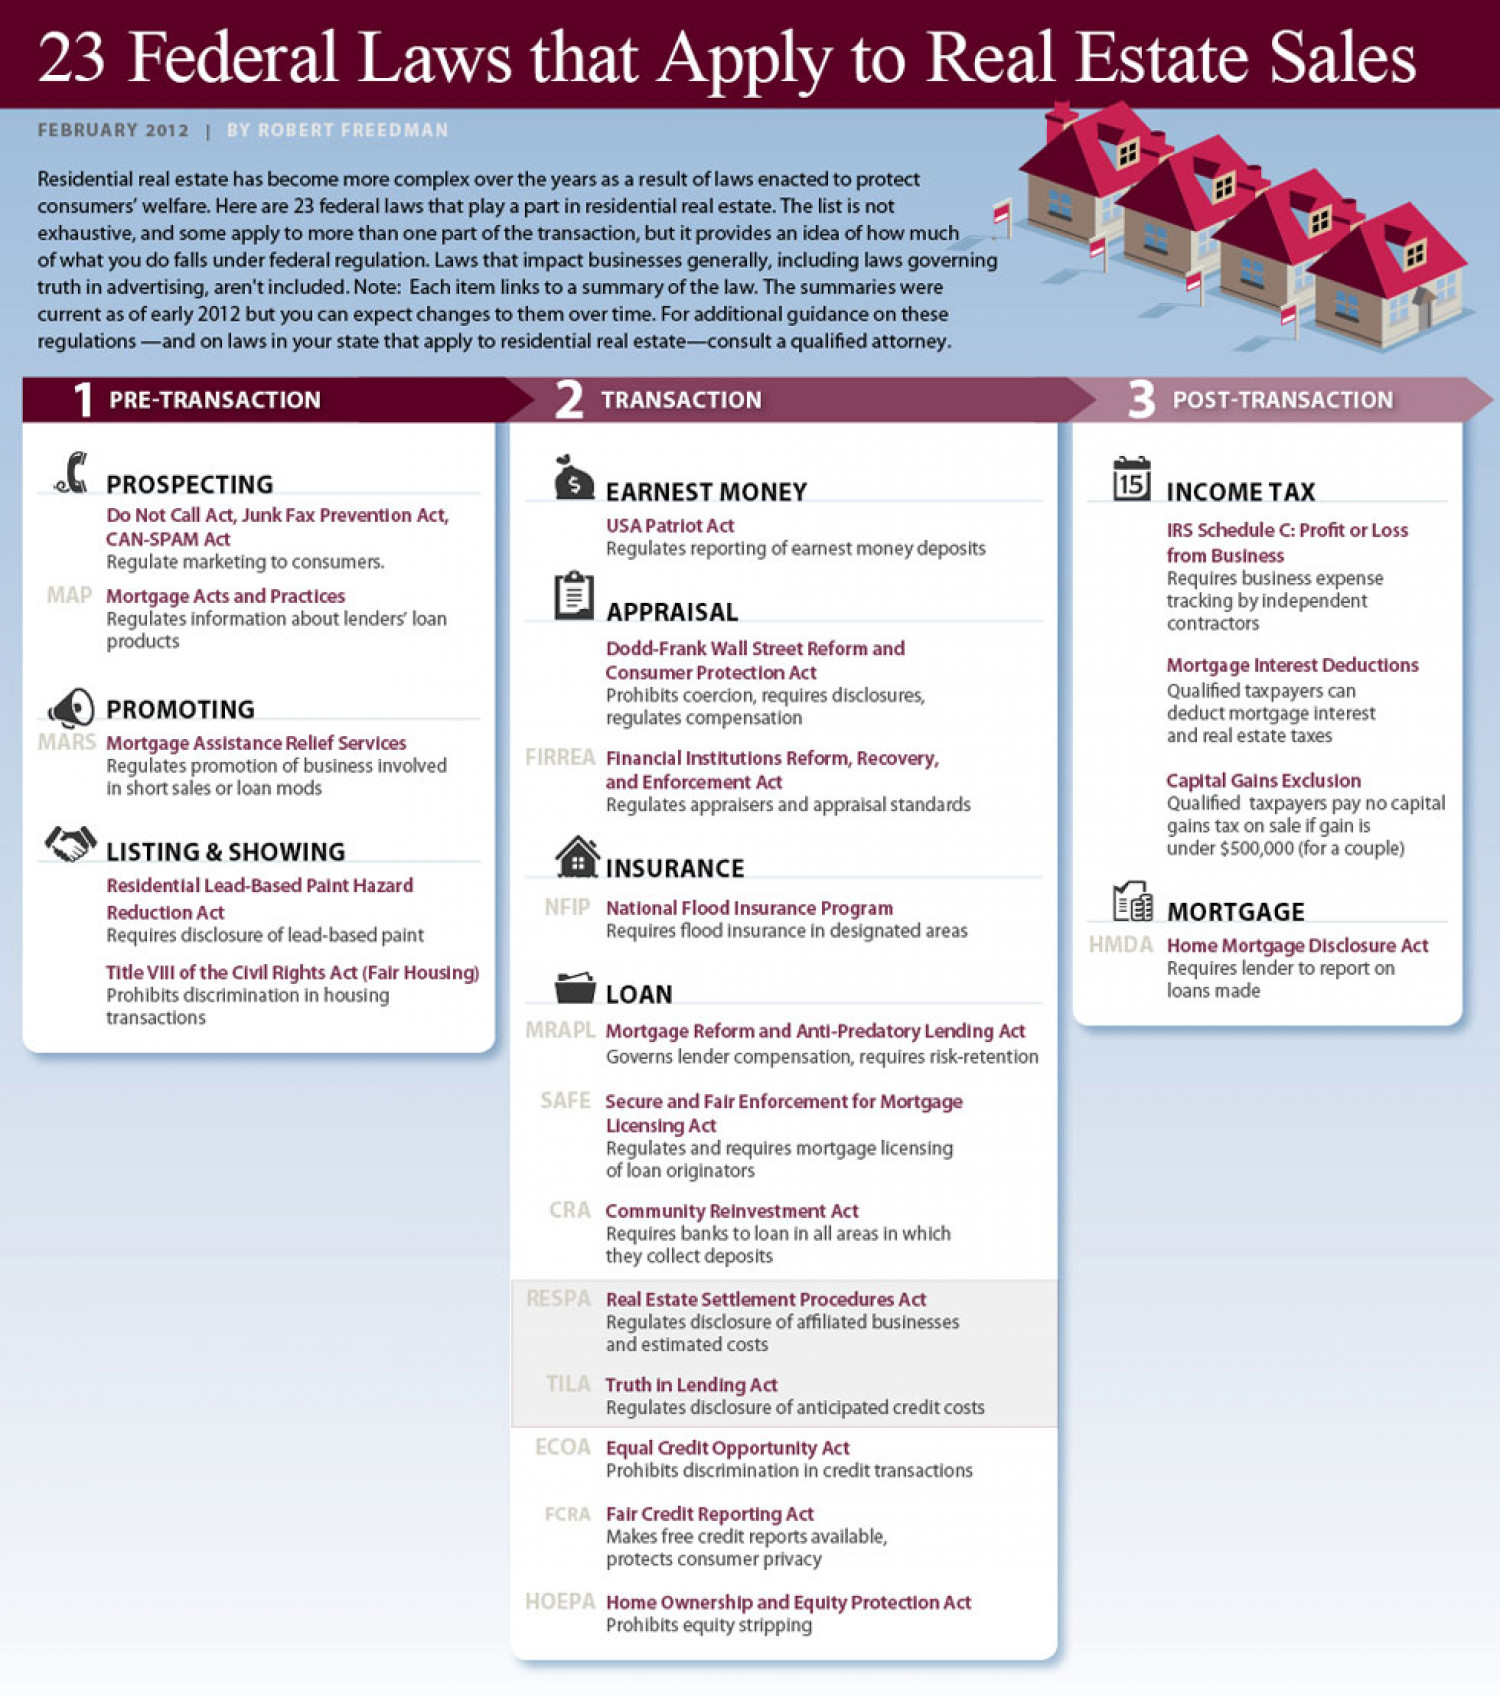 23 Federal Laws that Apply to Real Estate Sales Infographic